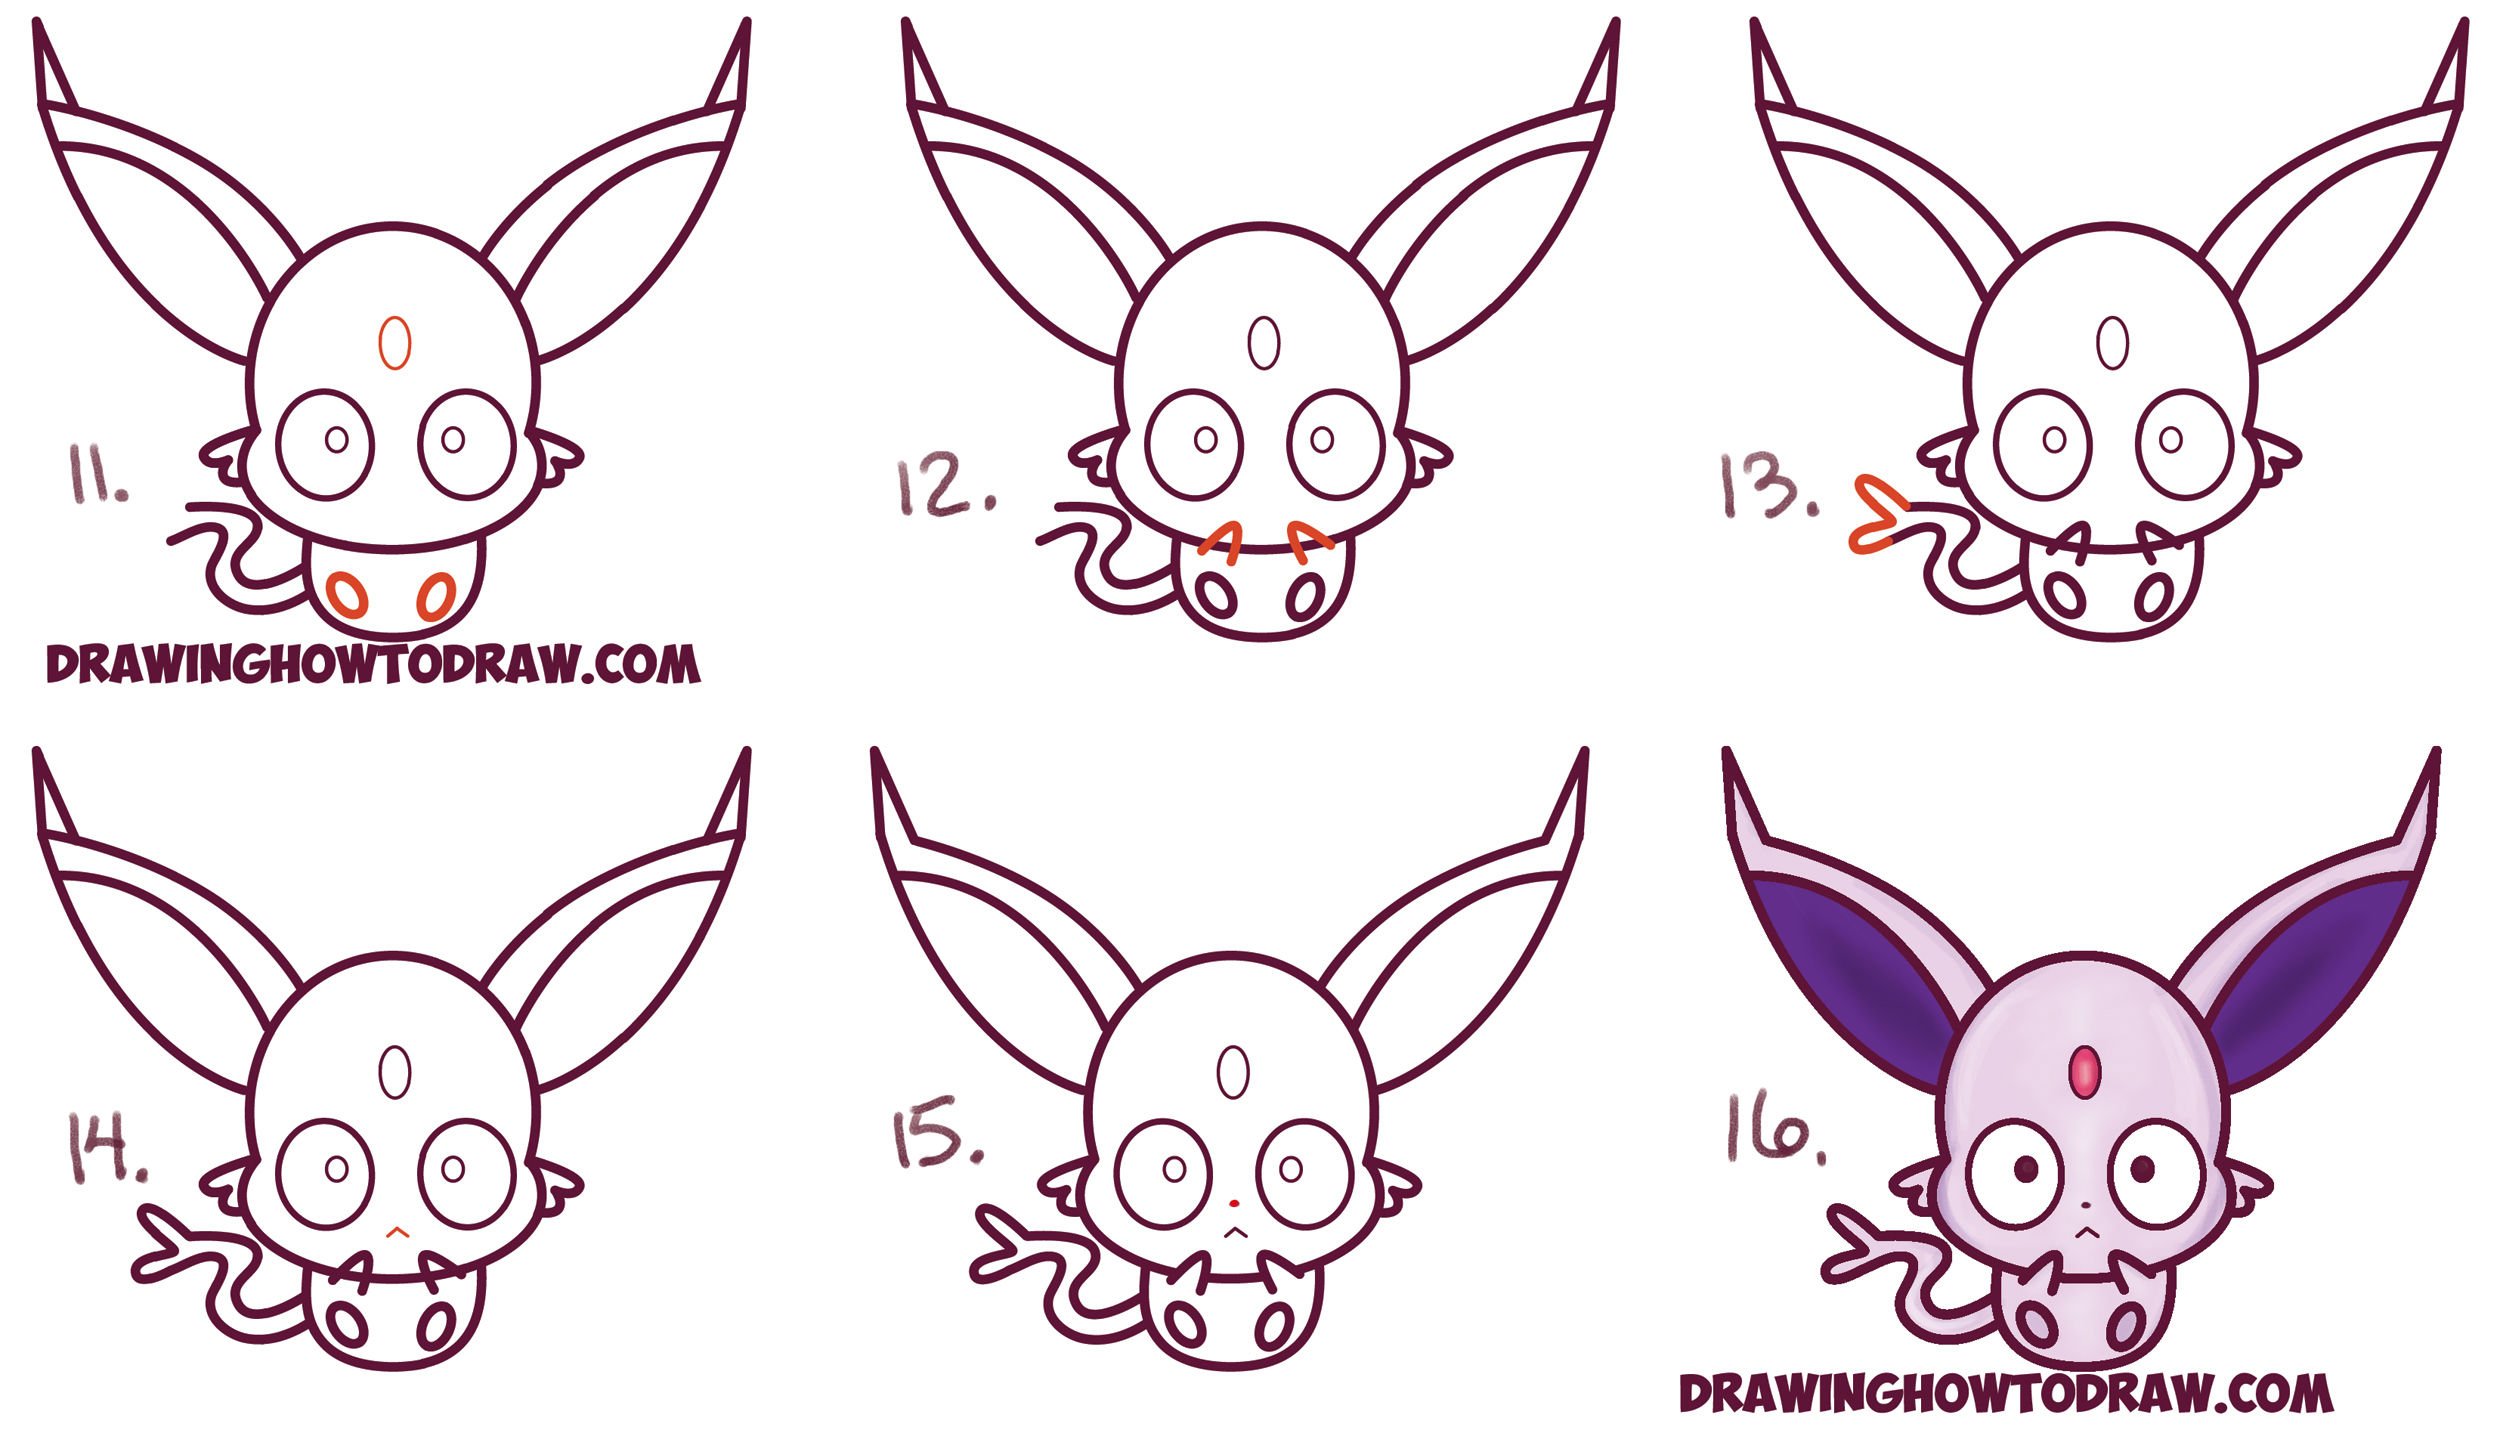 Learn How to Draw Cute Kawaii / Chibi Espeon from Pokemon Simple Steps Drawing Lesson for Beginners